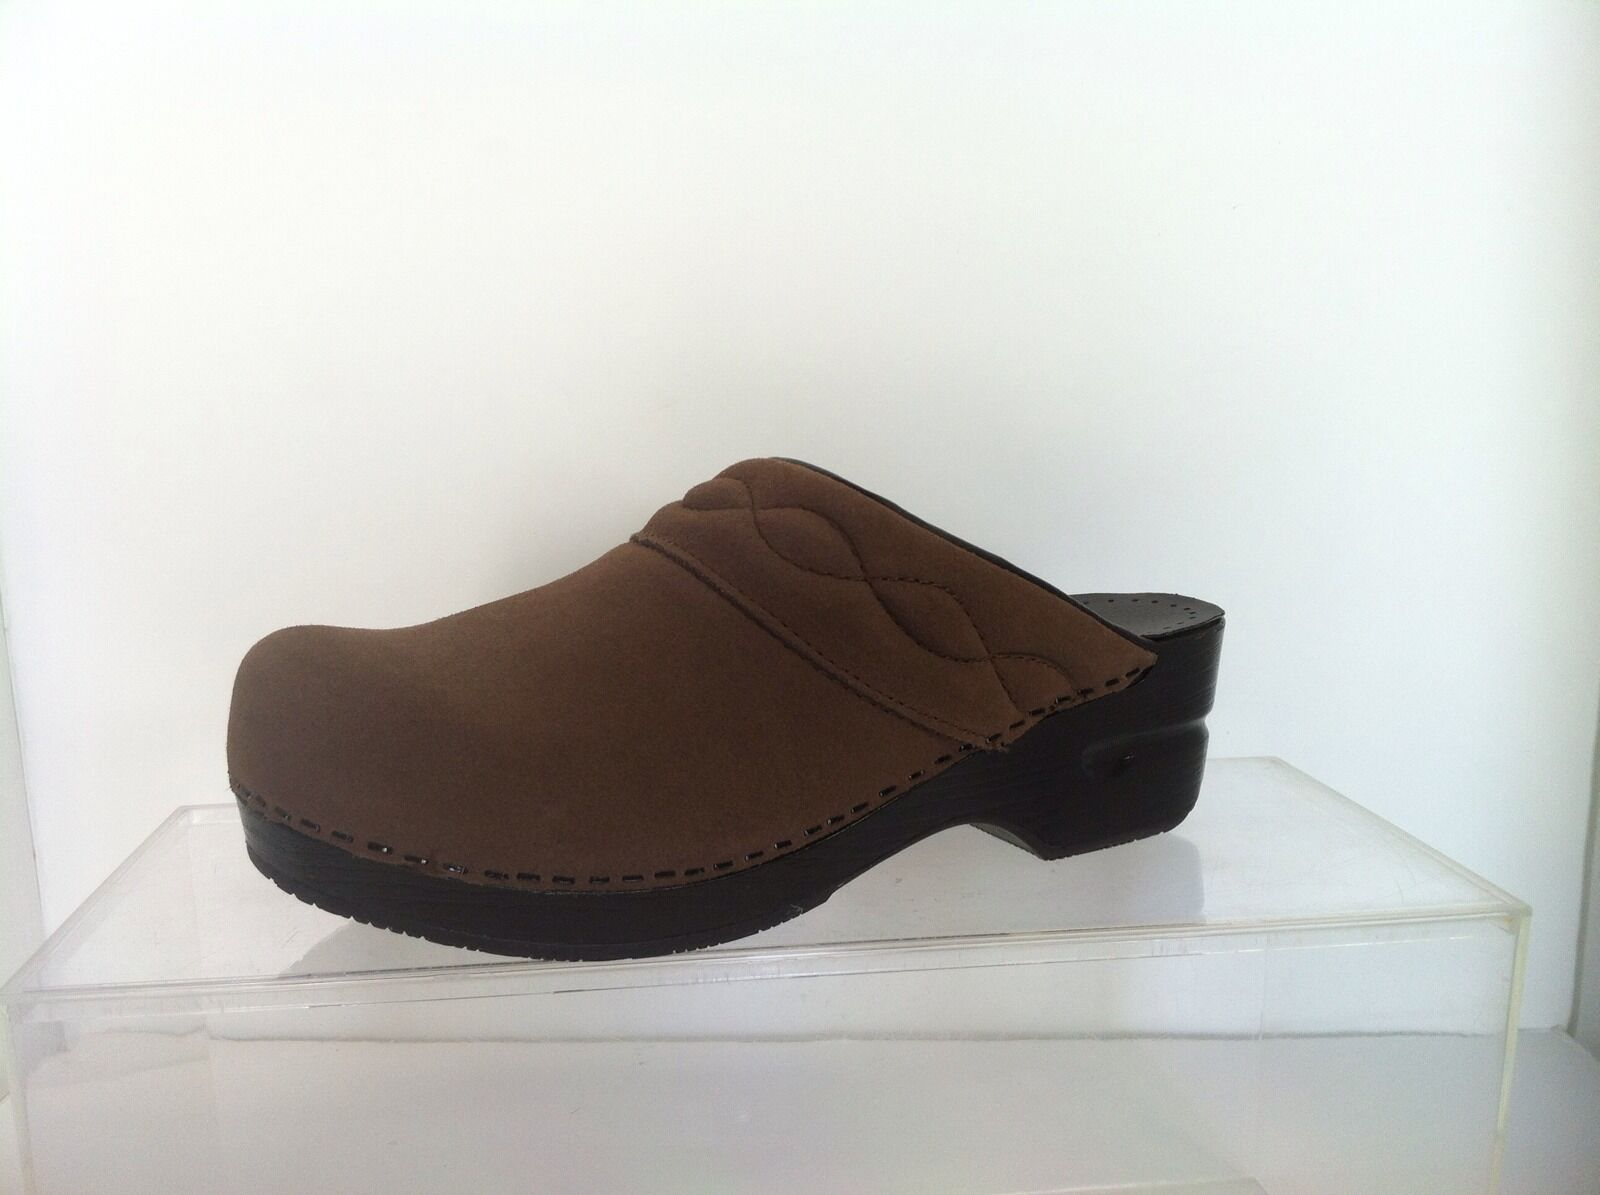 Lands End Slippers Oxfords Shoes Women Size 8